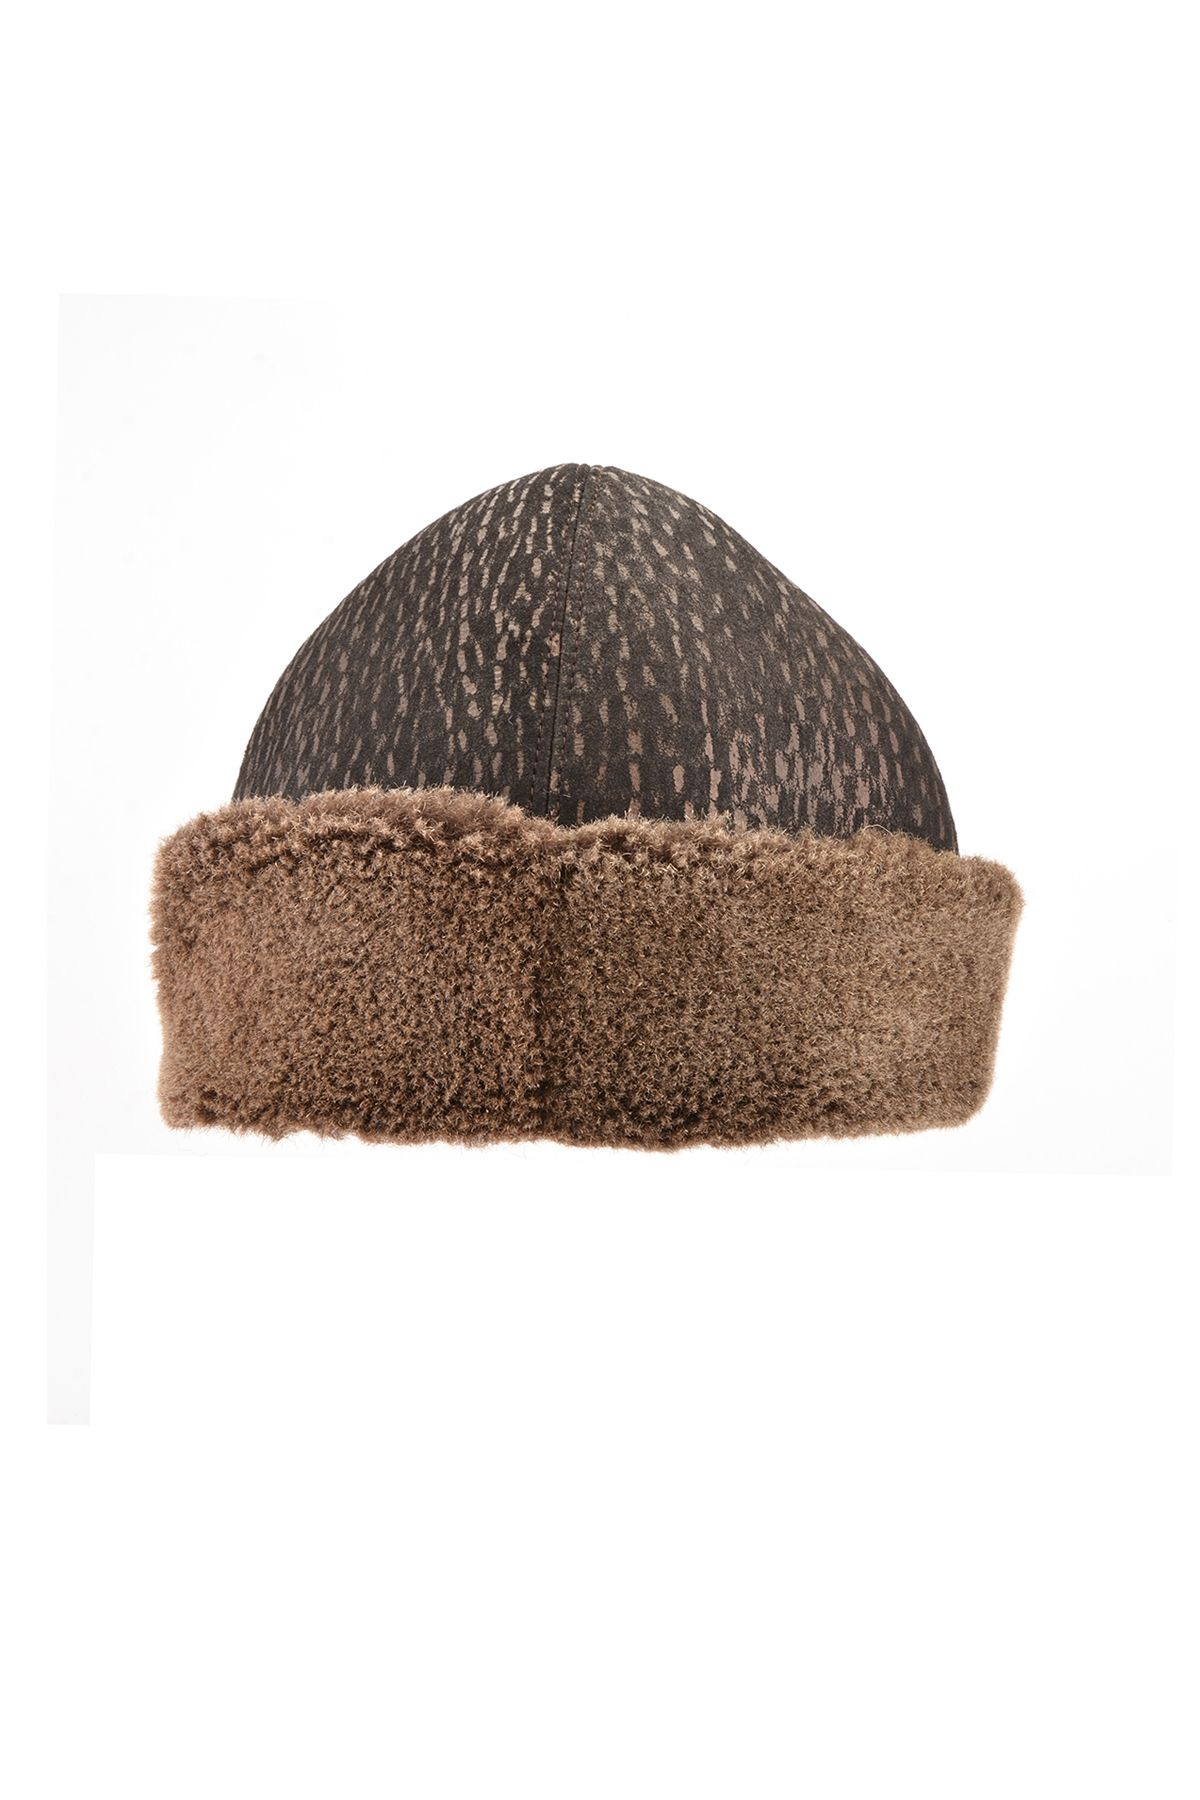 Pegia Ottoman Hat From Genuine Leather And Fur Brown